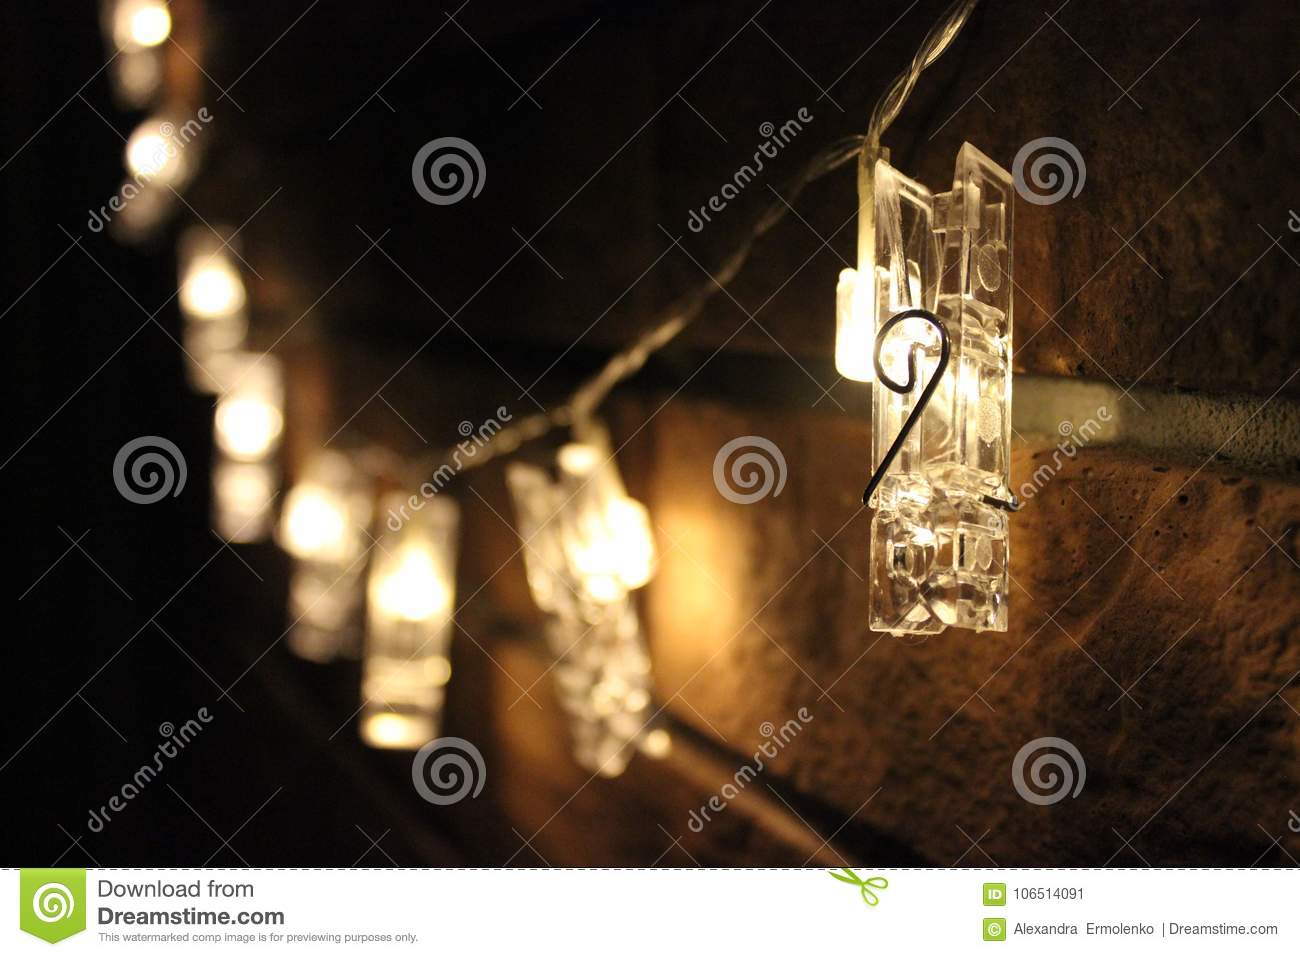 What Can I Use To Attach Christmas Lights To Brick christmas lights, lighted garland closeup stock image